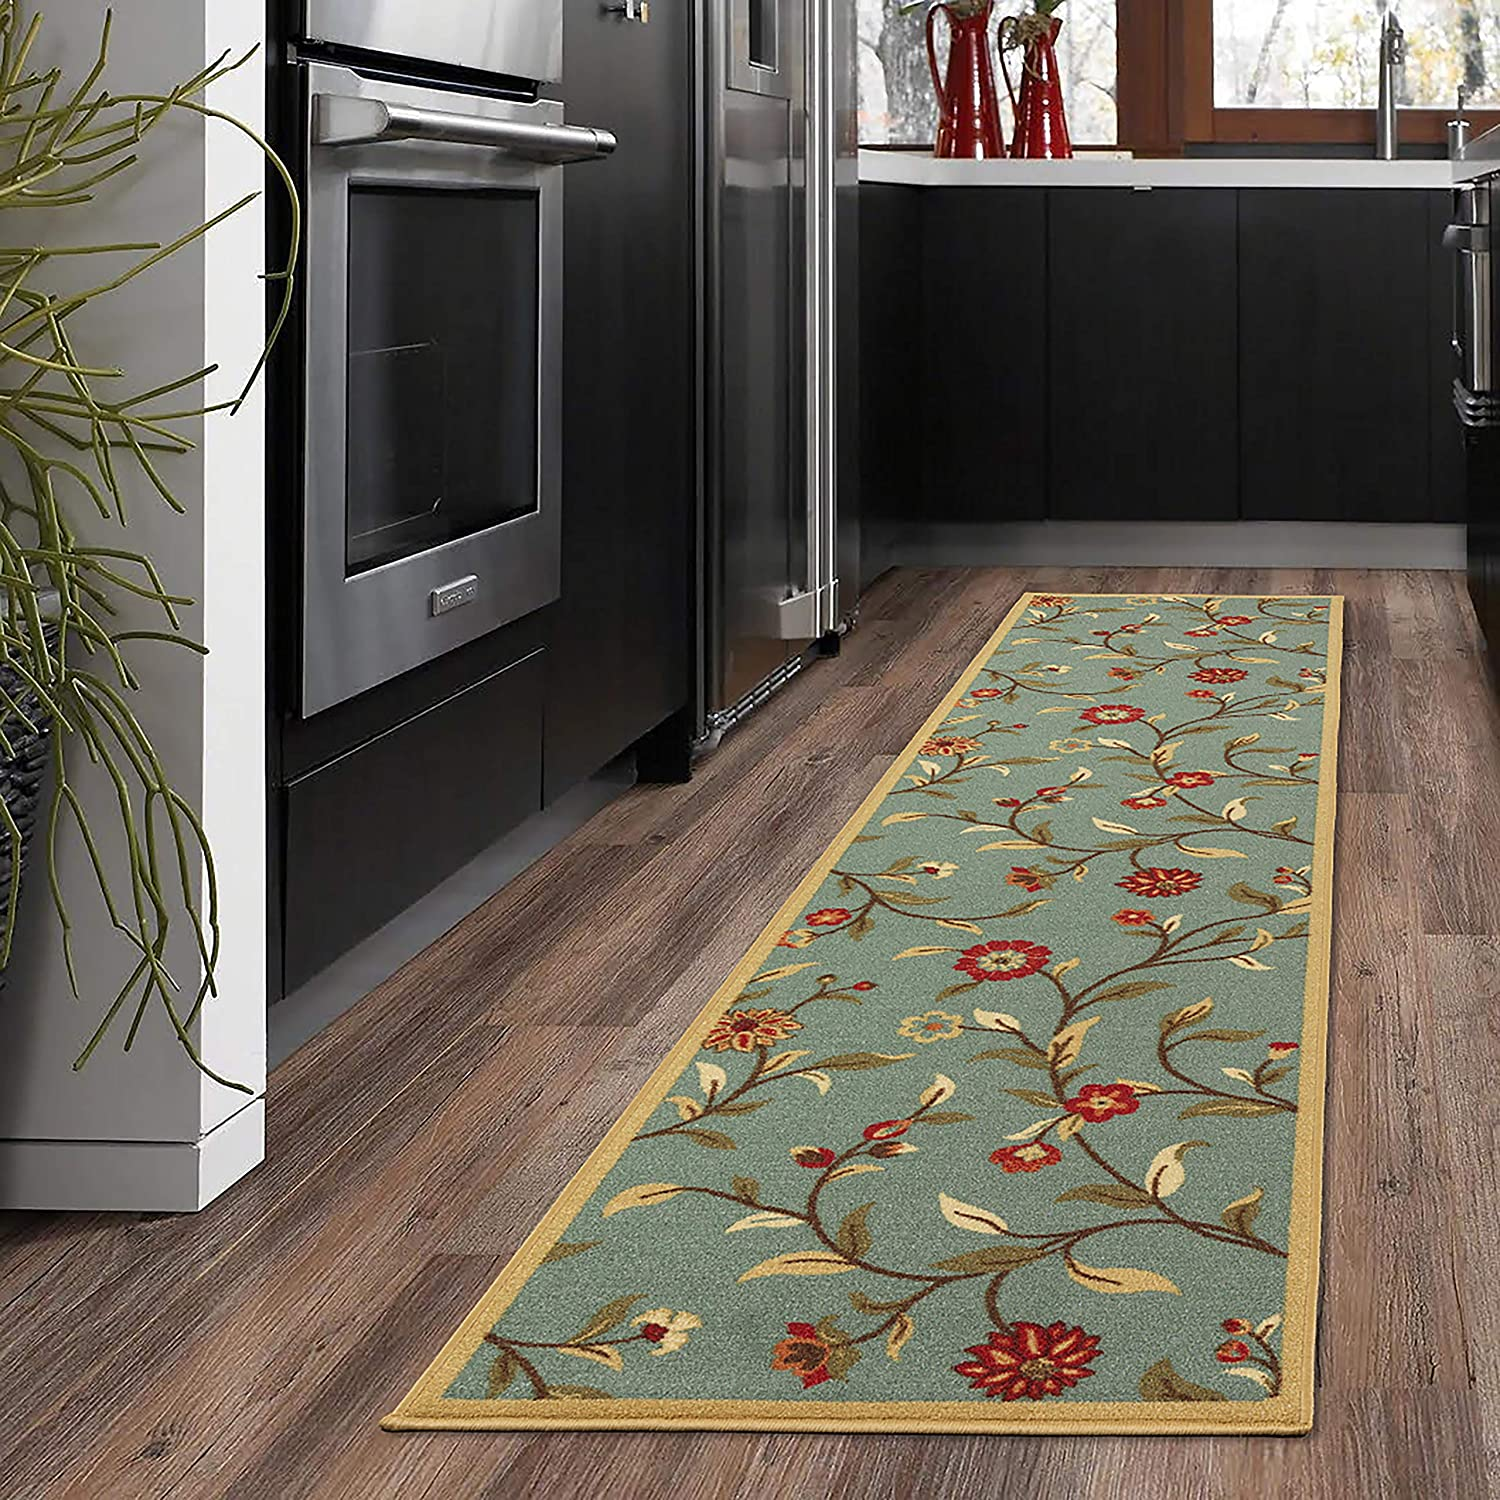 "Ottomanson Ottohome Collection Garden Design Modern Skid (Non-Slip) Rubber Backing (20"" X 59"", Sage Green Floral) Area Rug"